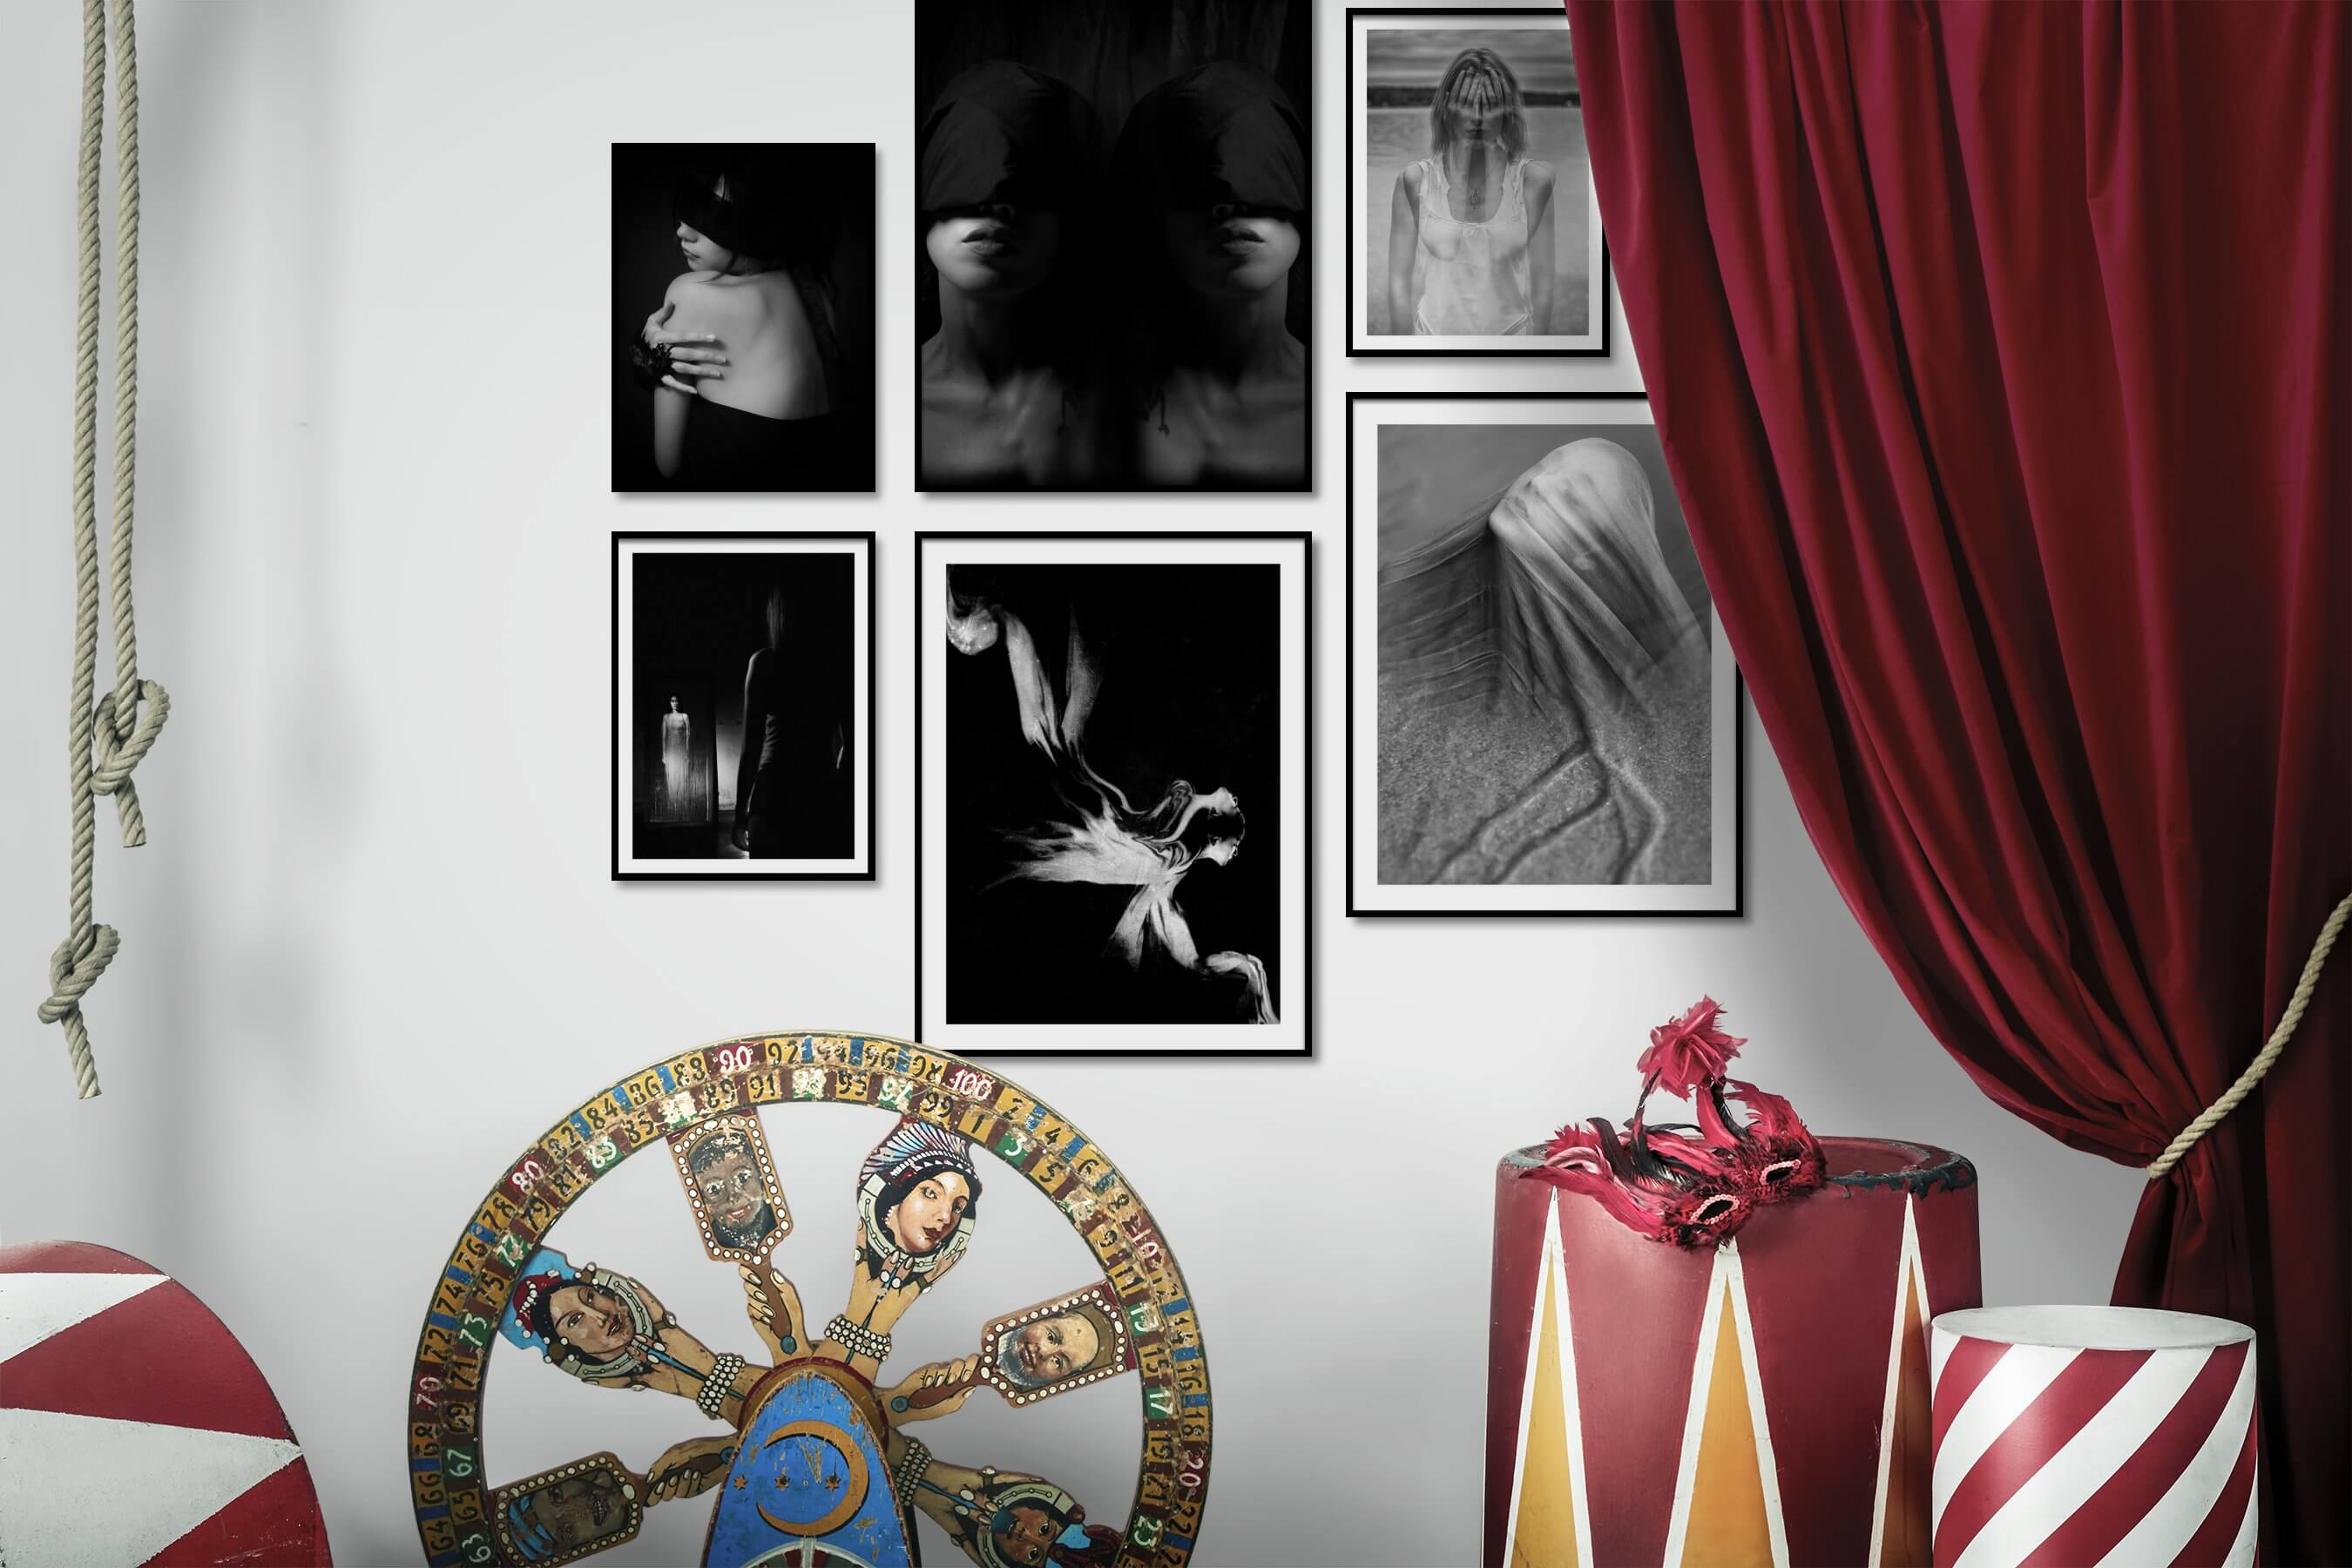 Gallery wall idea with six framed pictures arranged on a wall depicting Fashion & Beauty, Black & White, Dark Tones, For the Minimalist, and Artsy